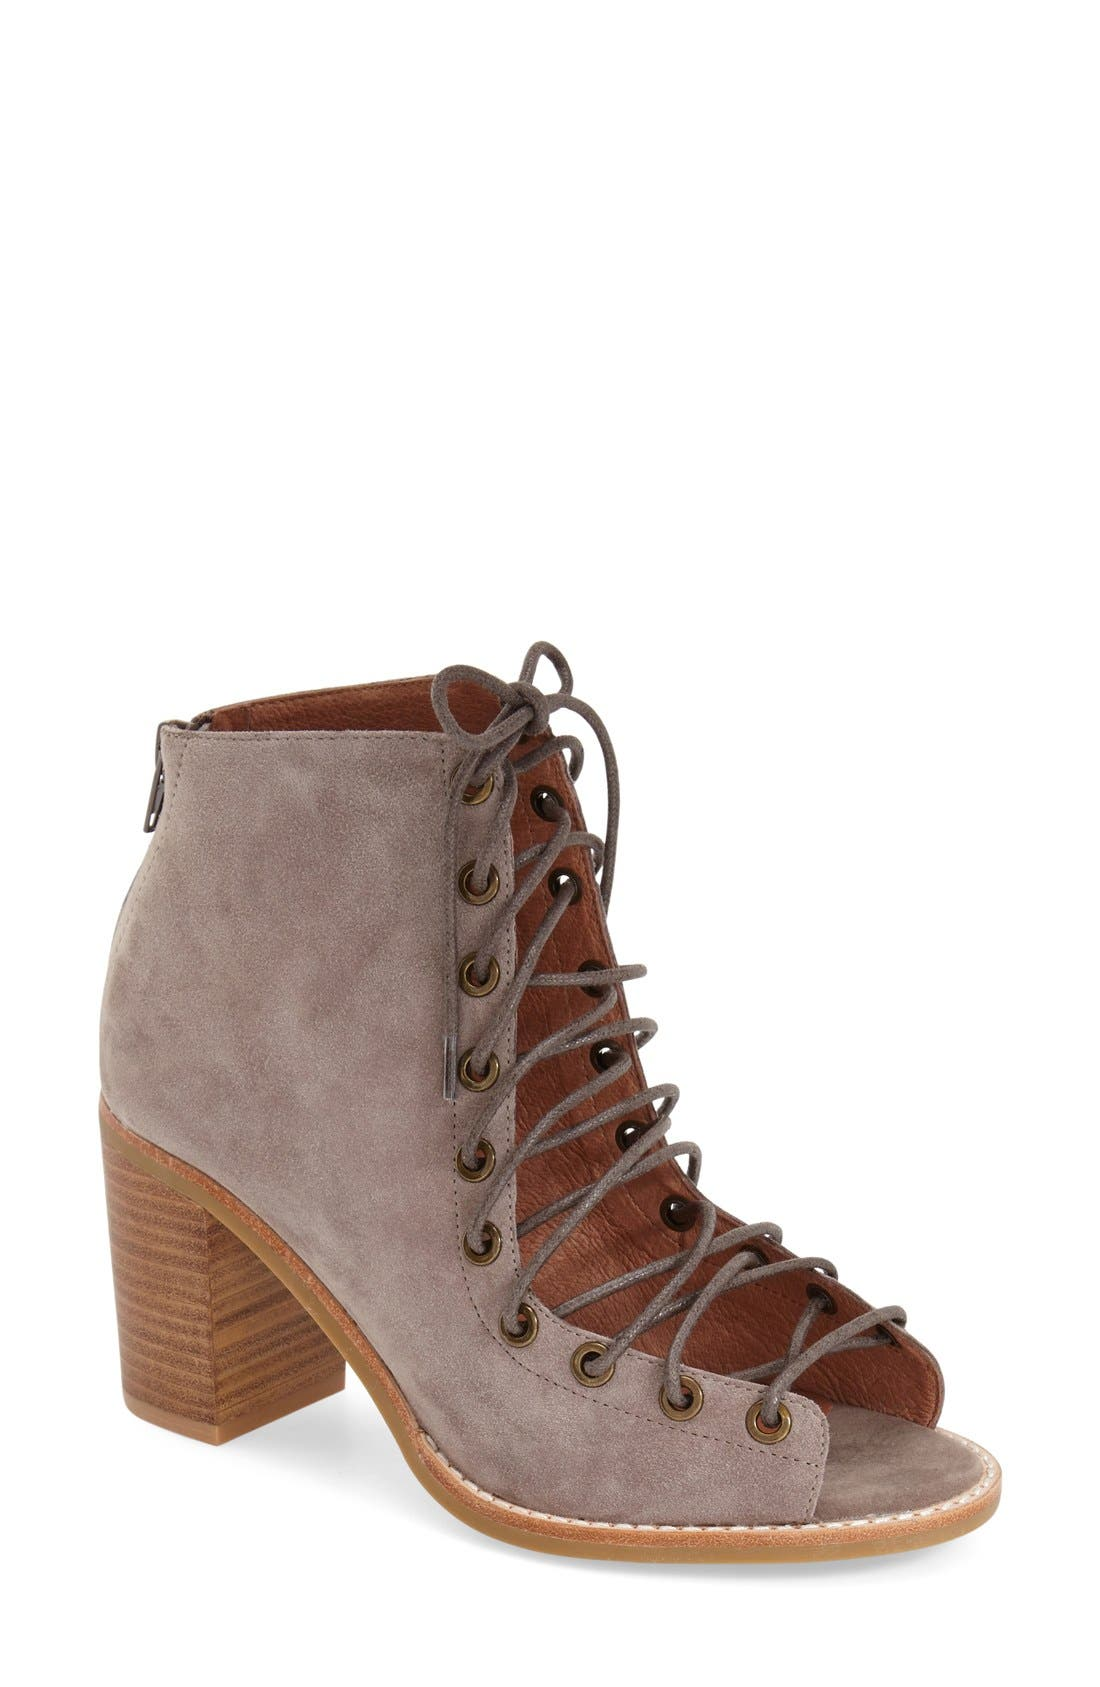 'Cors' Suede Peep Toe Bootie,                             Main thumbnail 1, color,                             Taupe Suede